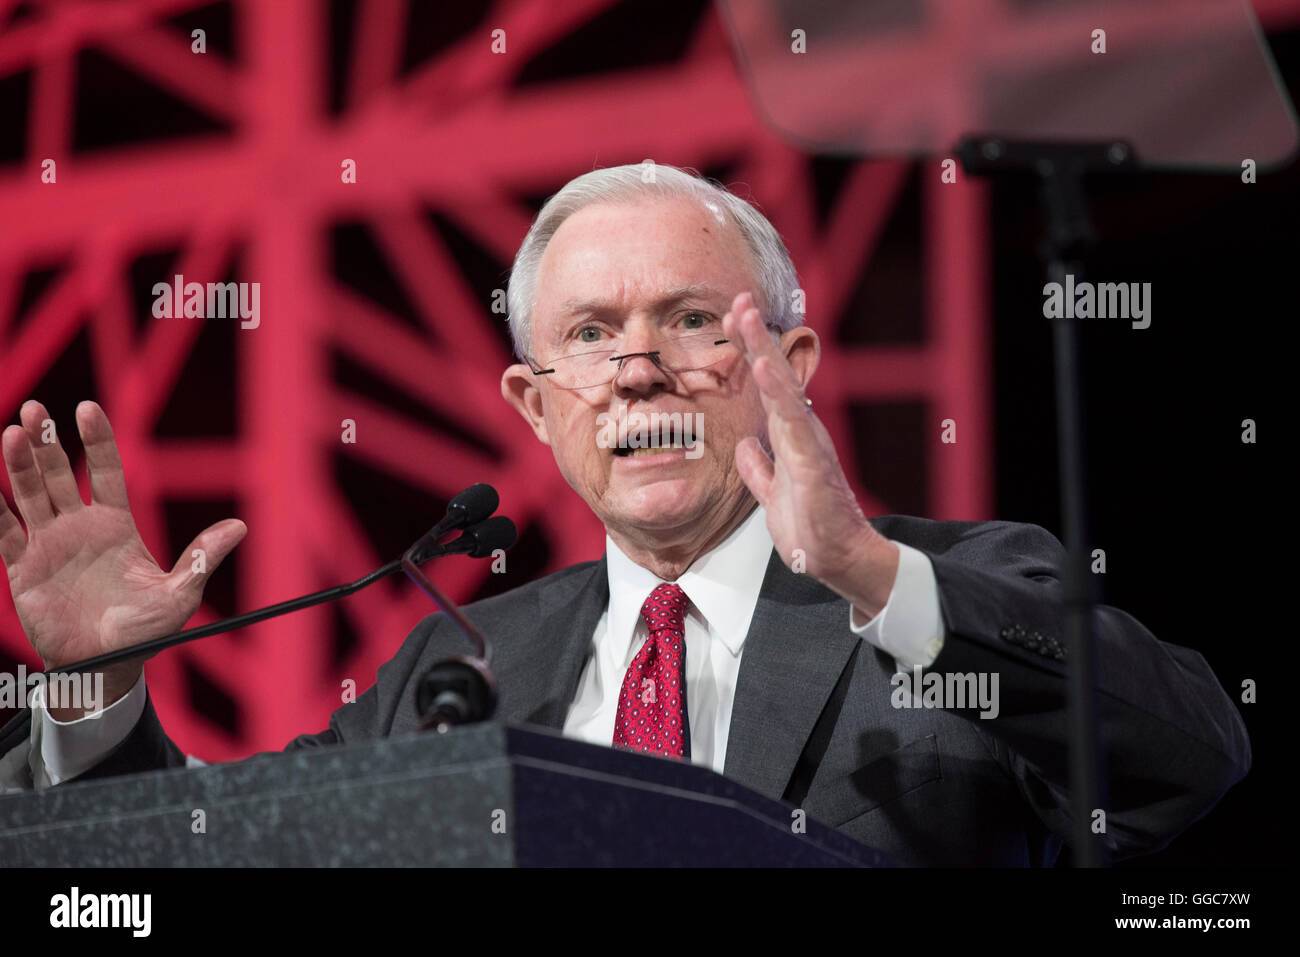 U.S. Sen. Jeff Sessions speaking on behalf of Donald Trump at the Republican Party of Texas convention in Dallas - Stock Image